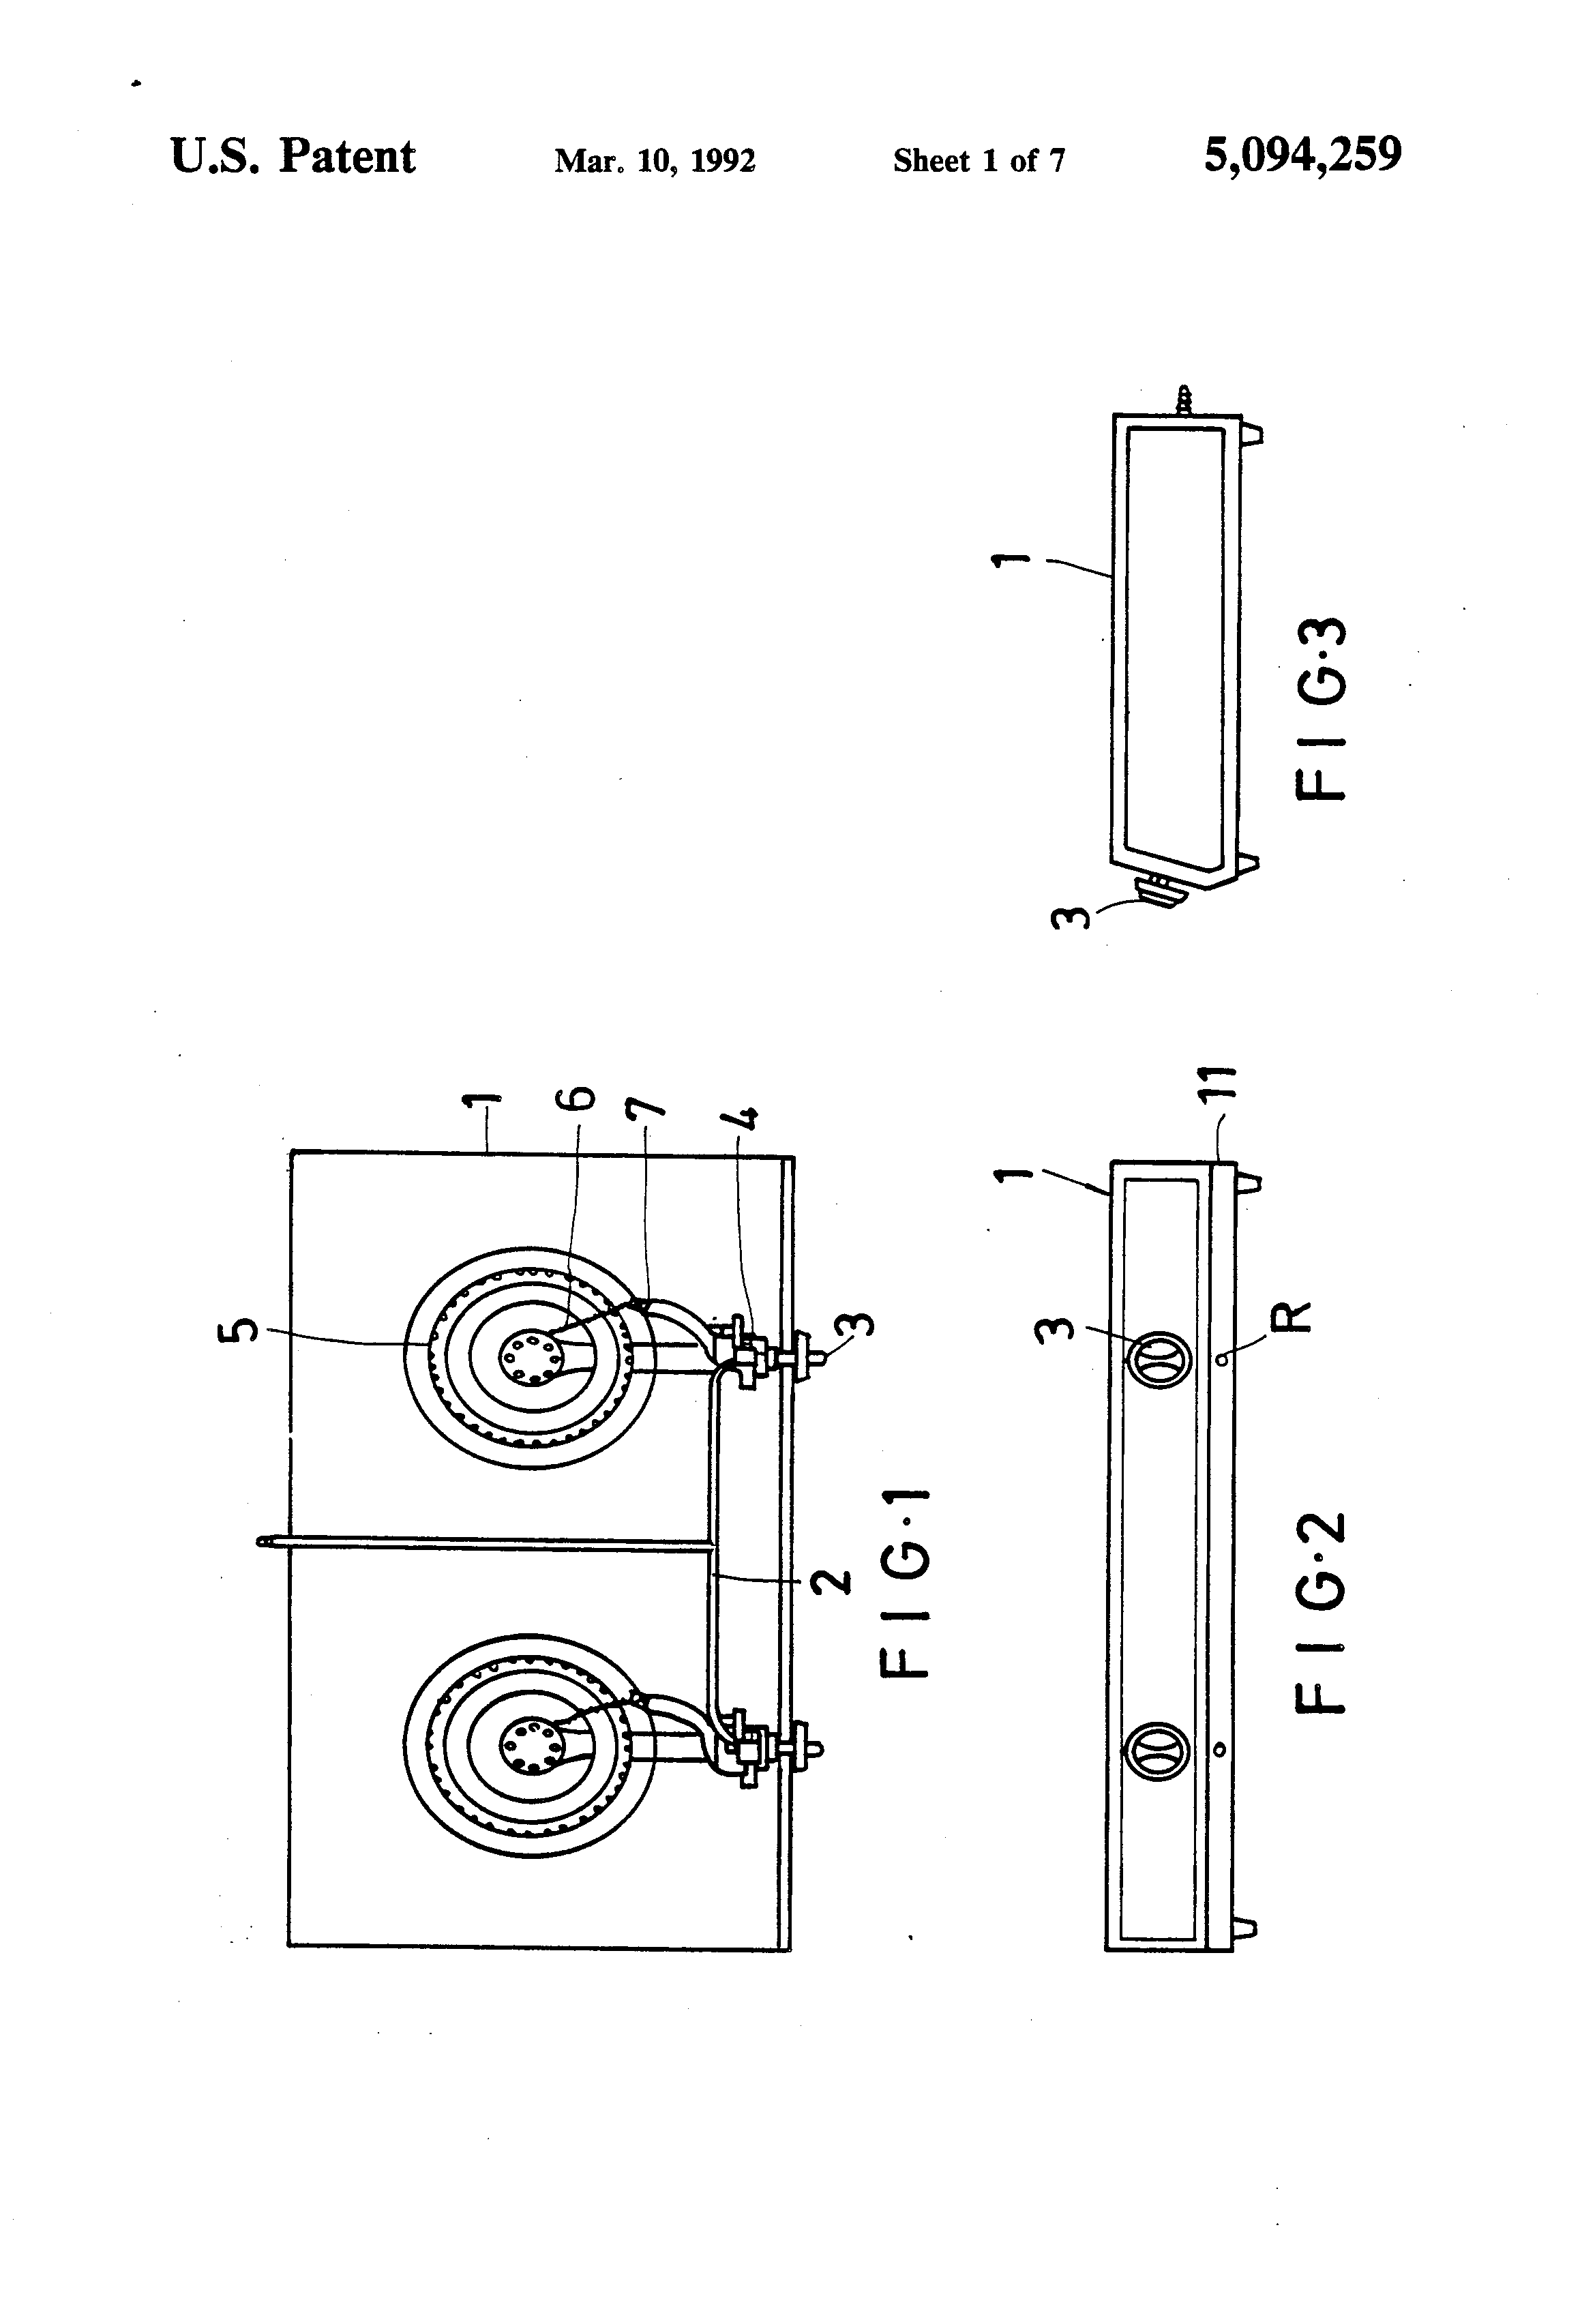 patent us5094259 - automatic shut-off safety device for gas stove